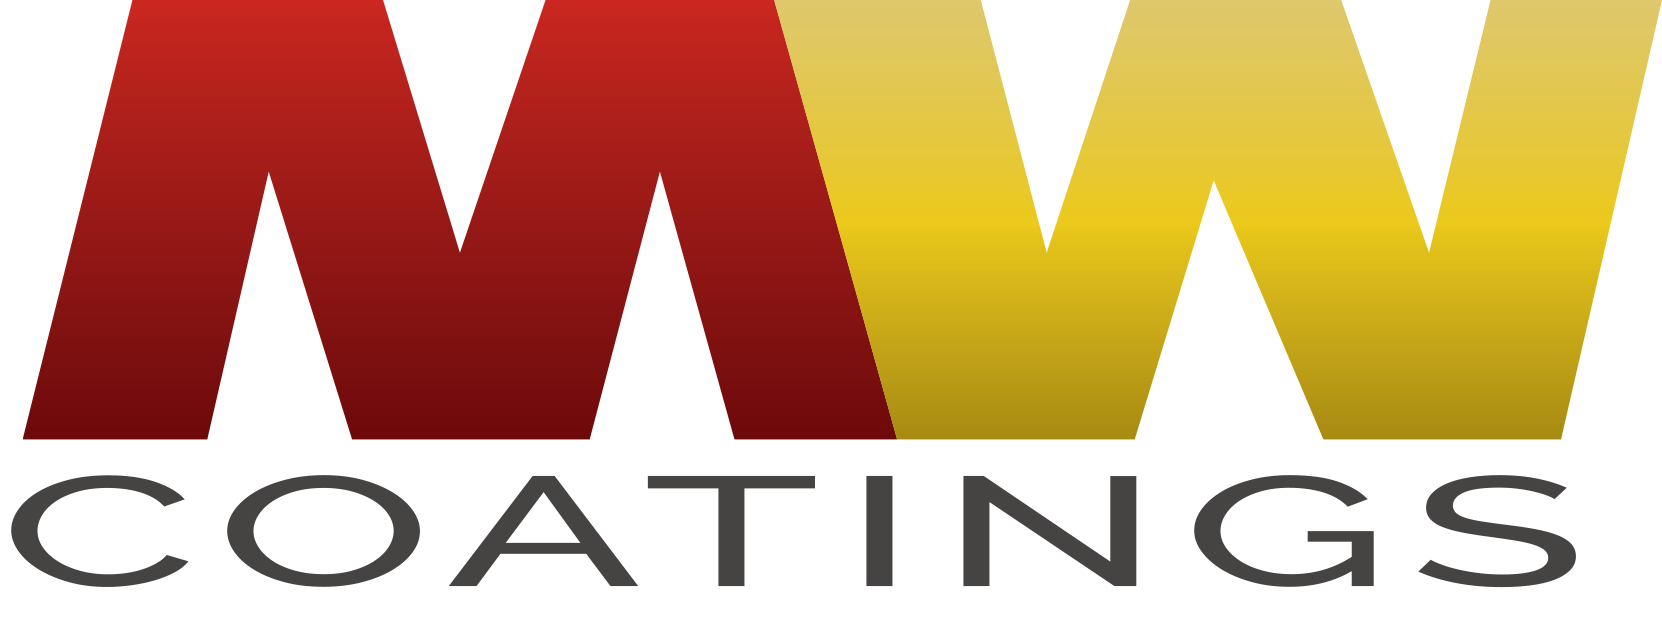 MW-Coatings